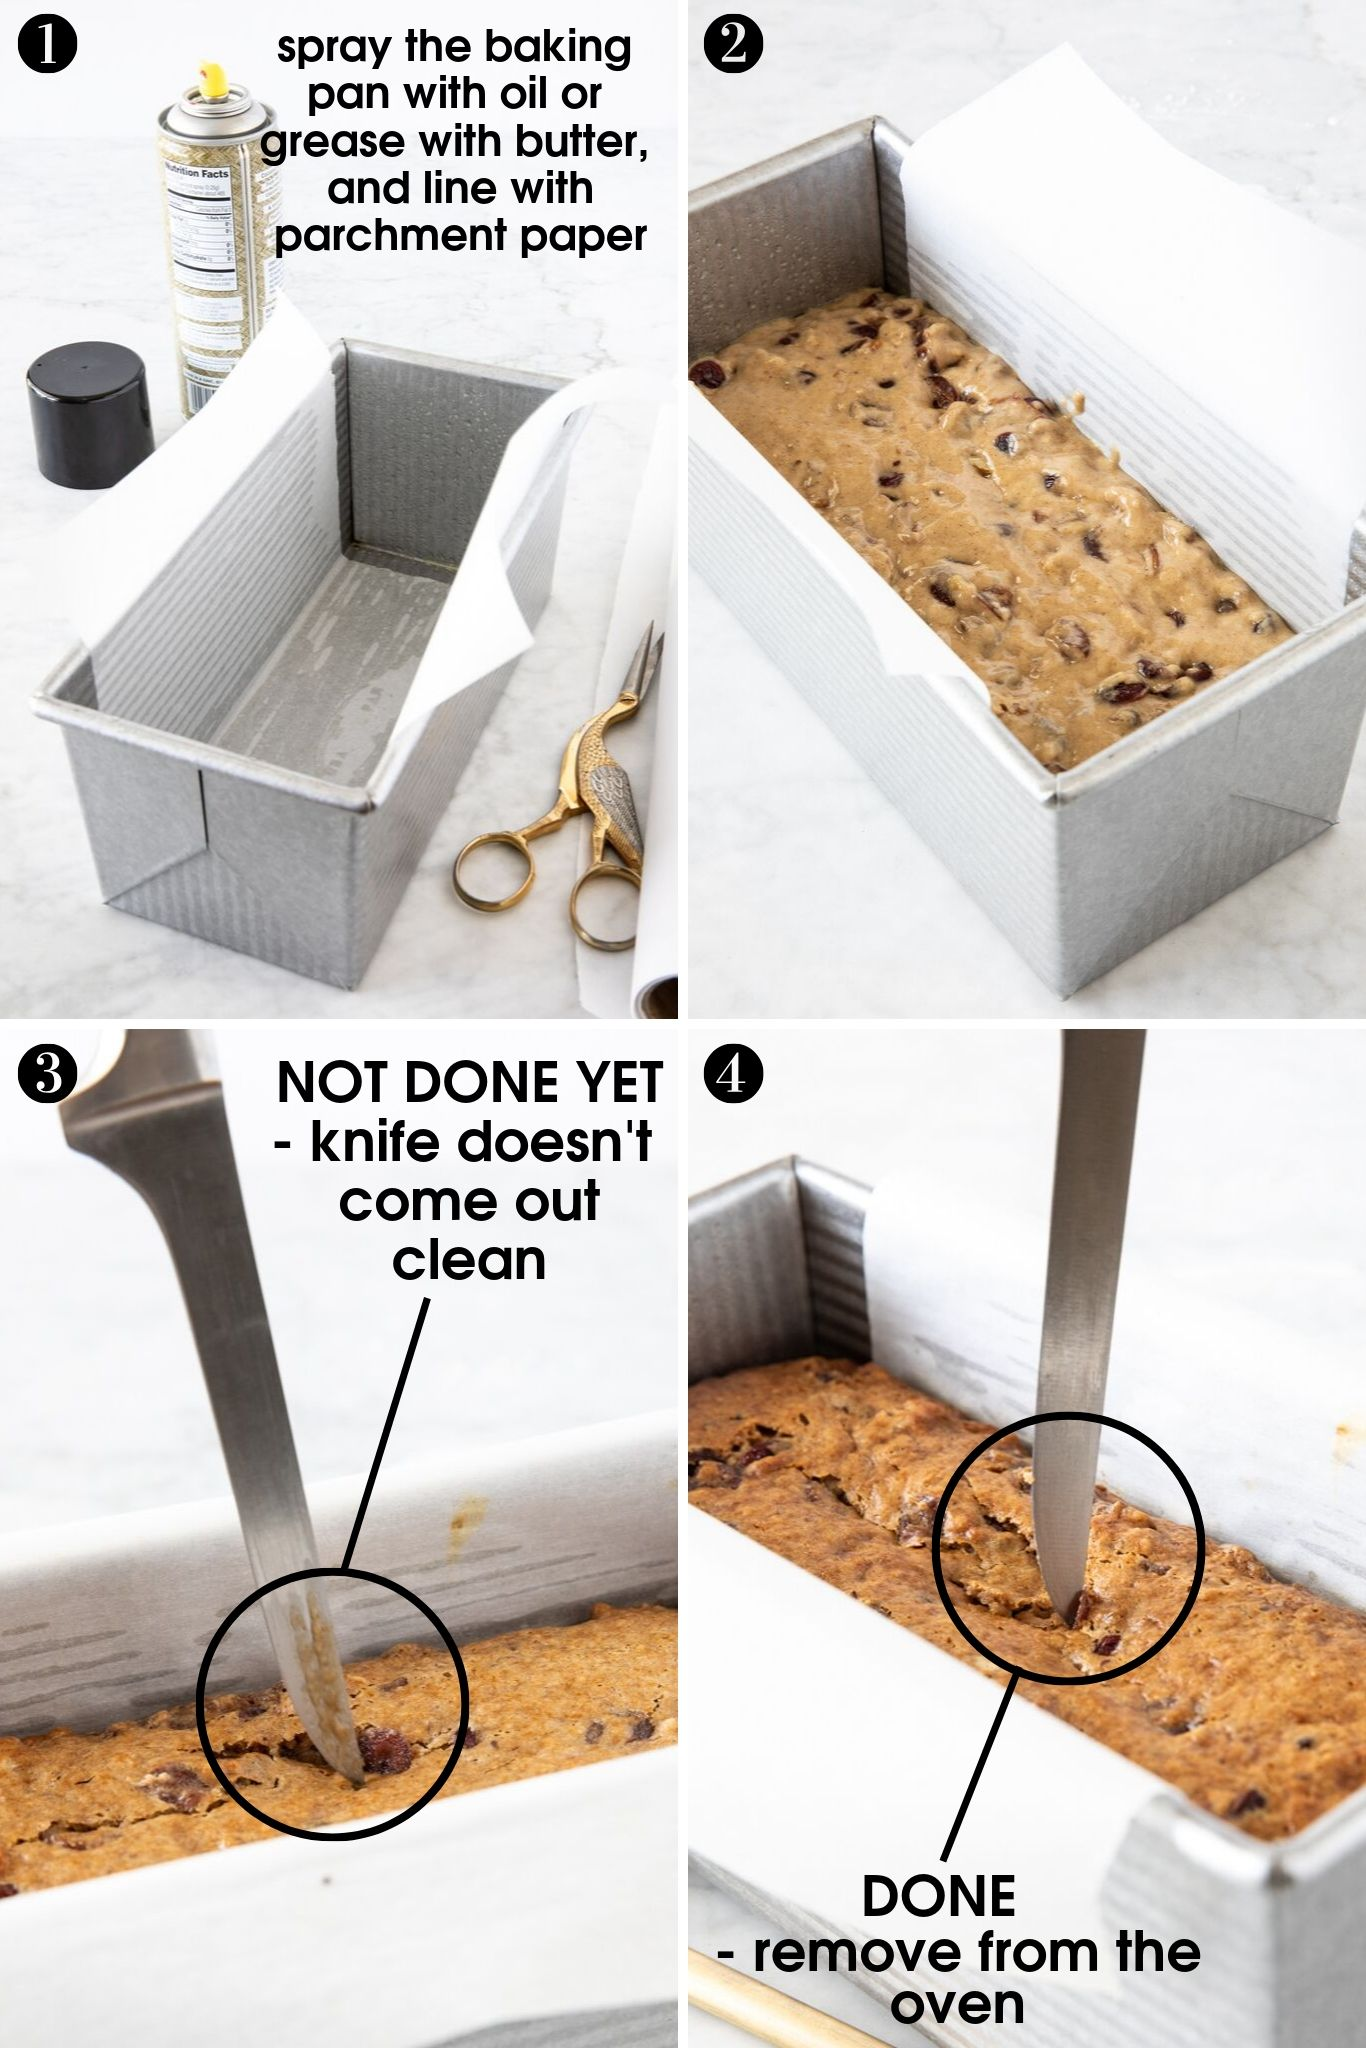 four steps to successfully baked banana cranberry pecan bread, showing baking bread pan lined with parchment paper; batter inside the baking pan; knife inserted into the bread coming out covered with batter and showing the bread isn't ready yet; last photo showing knife coming out clean-the bread is ready from verygoodcook.com